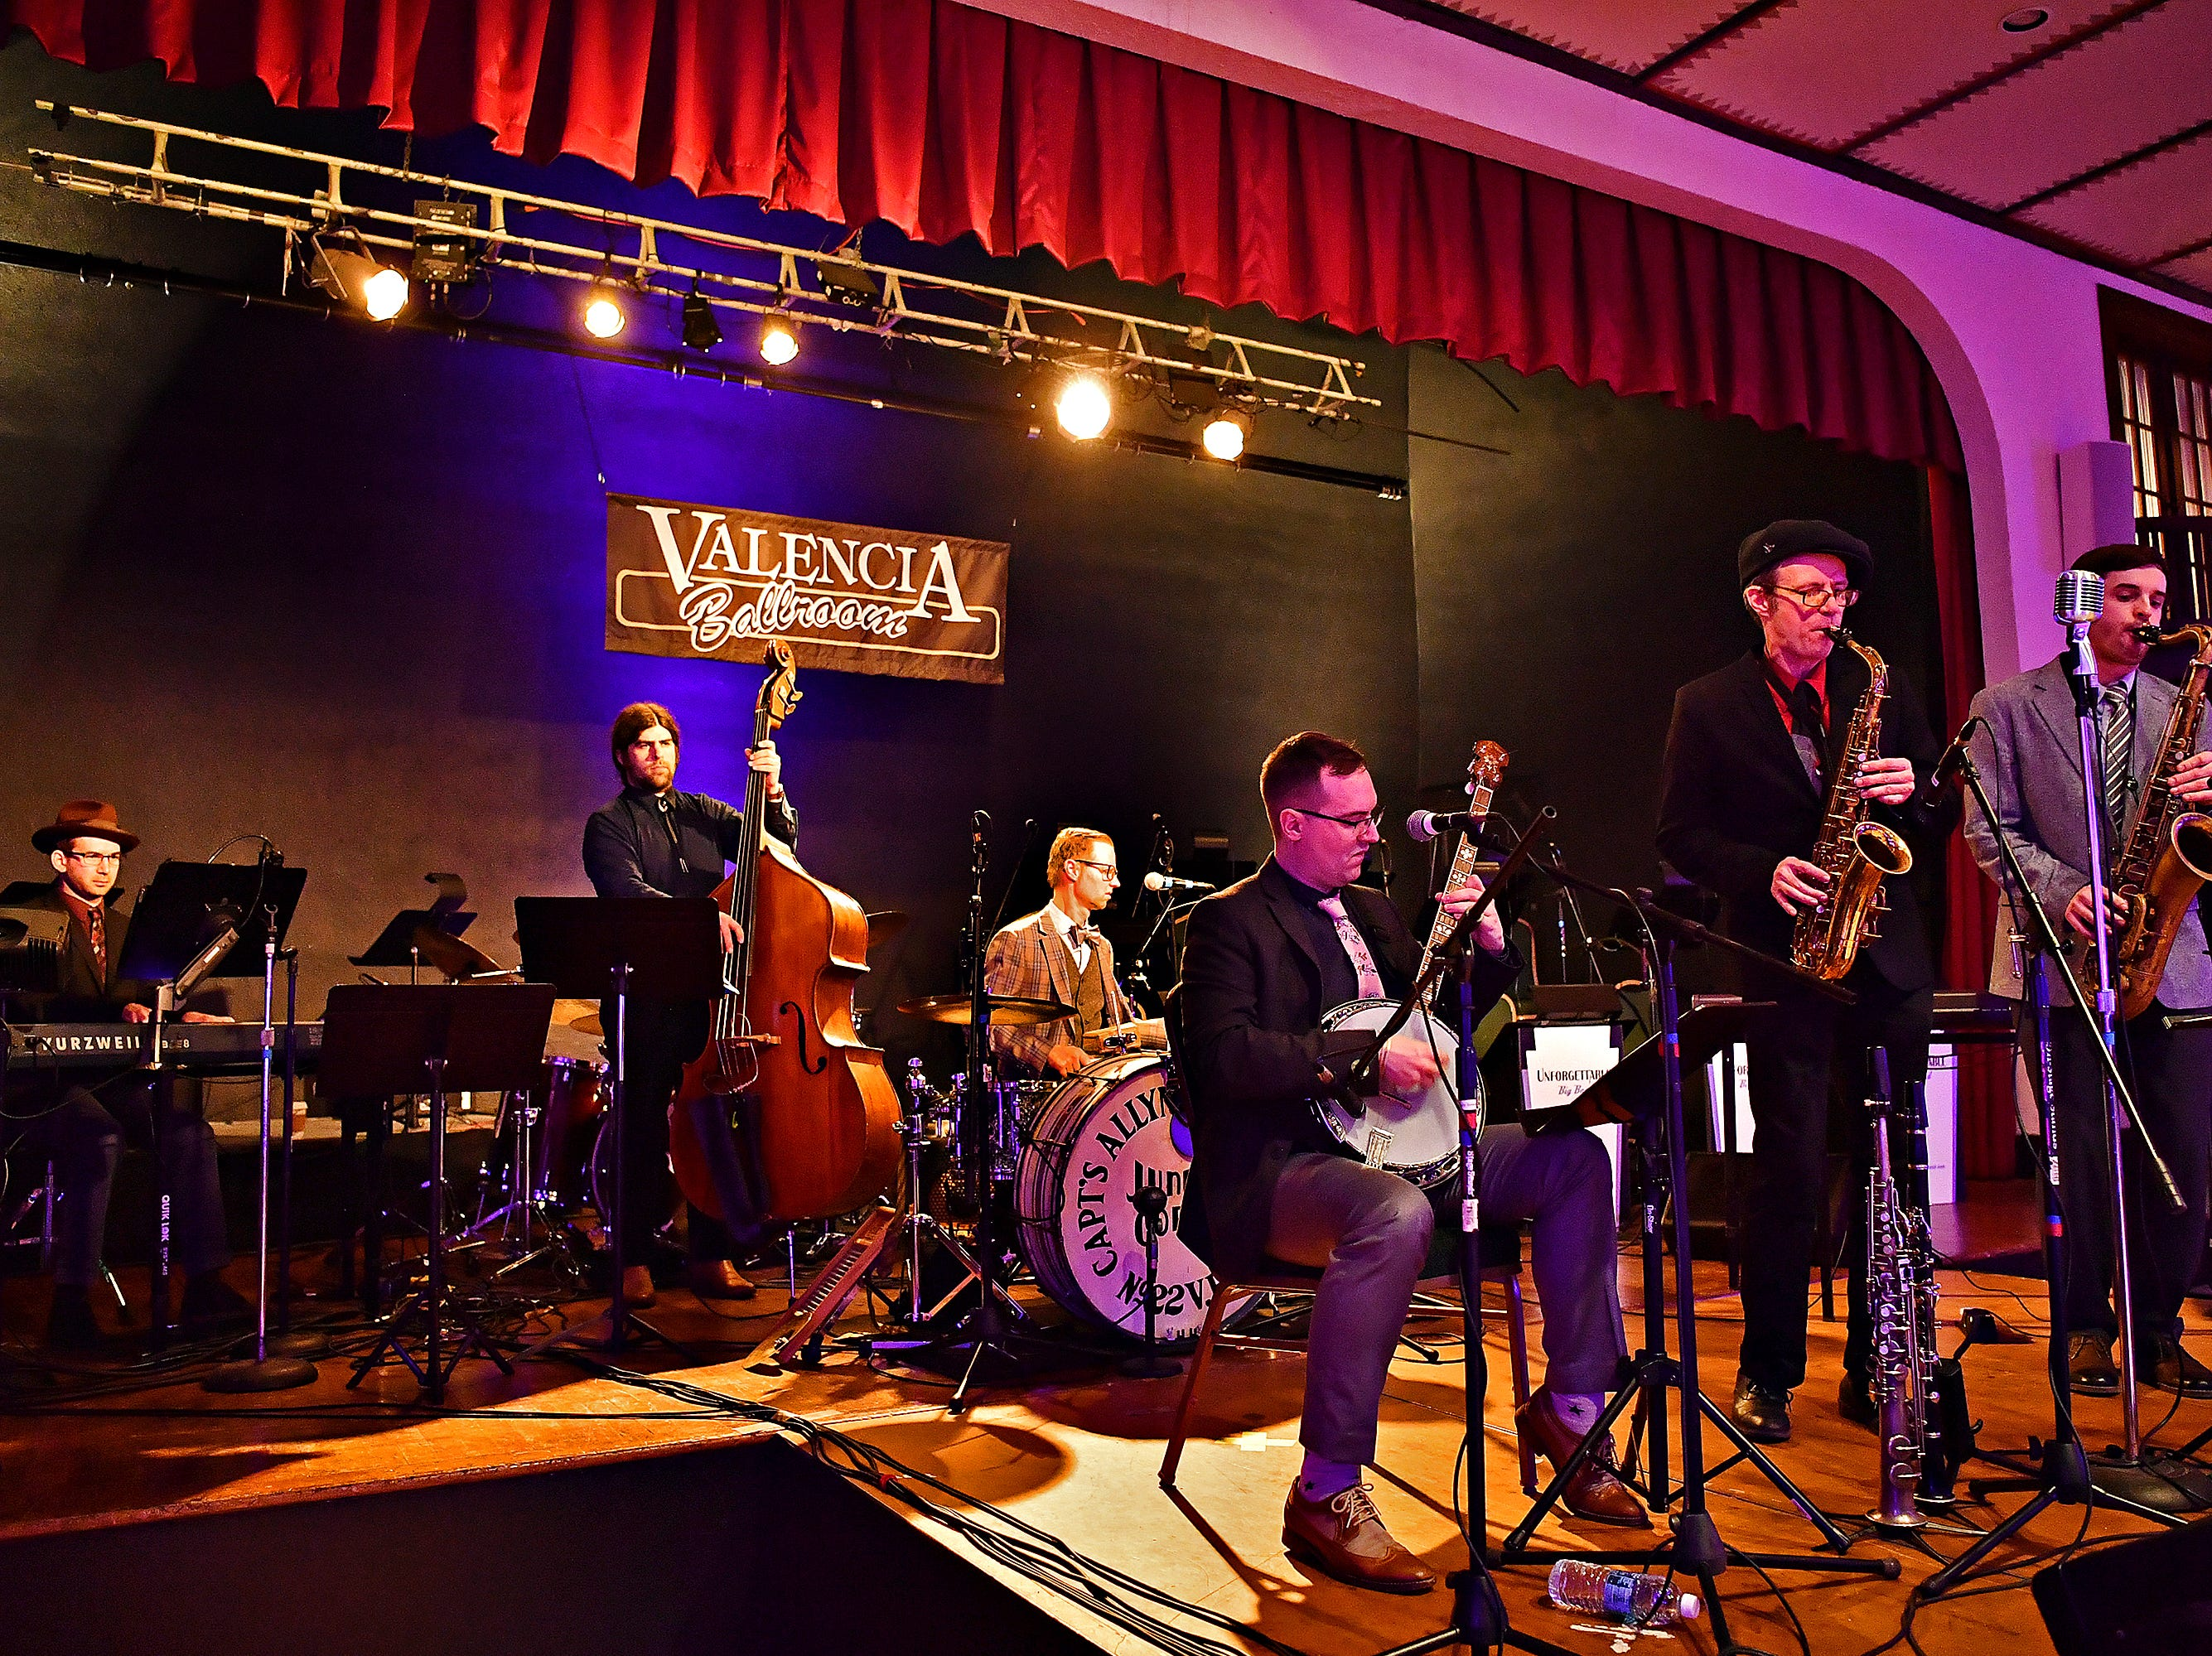 Parlour Noir performs during Big Swing Thing III Premiere Swing Music & Dance Festival at Valencia Ballroom in York City, Friday, April 12, 2019. Dawn J. Sagert photo